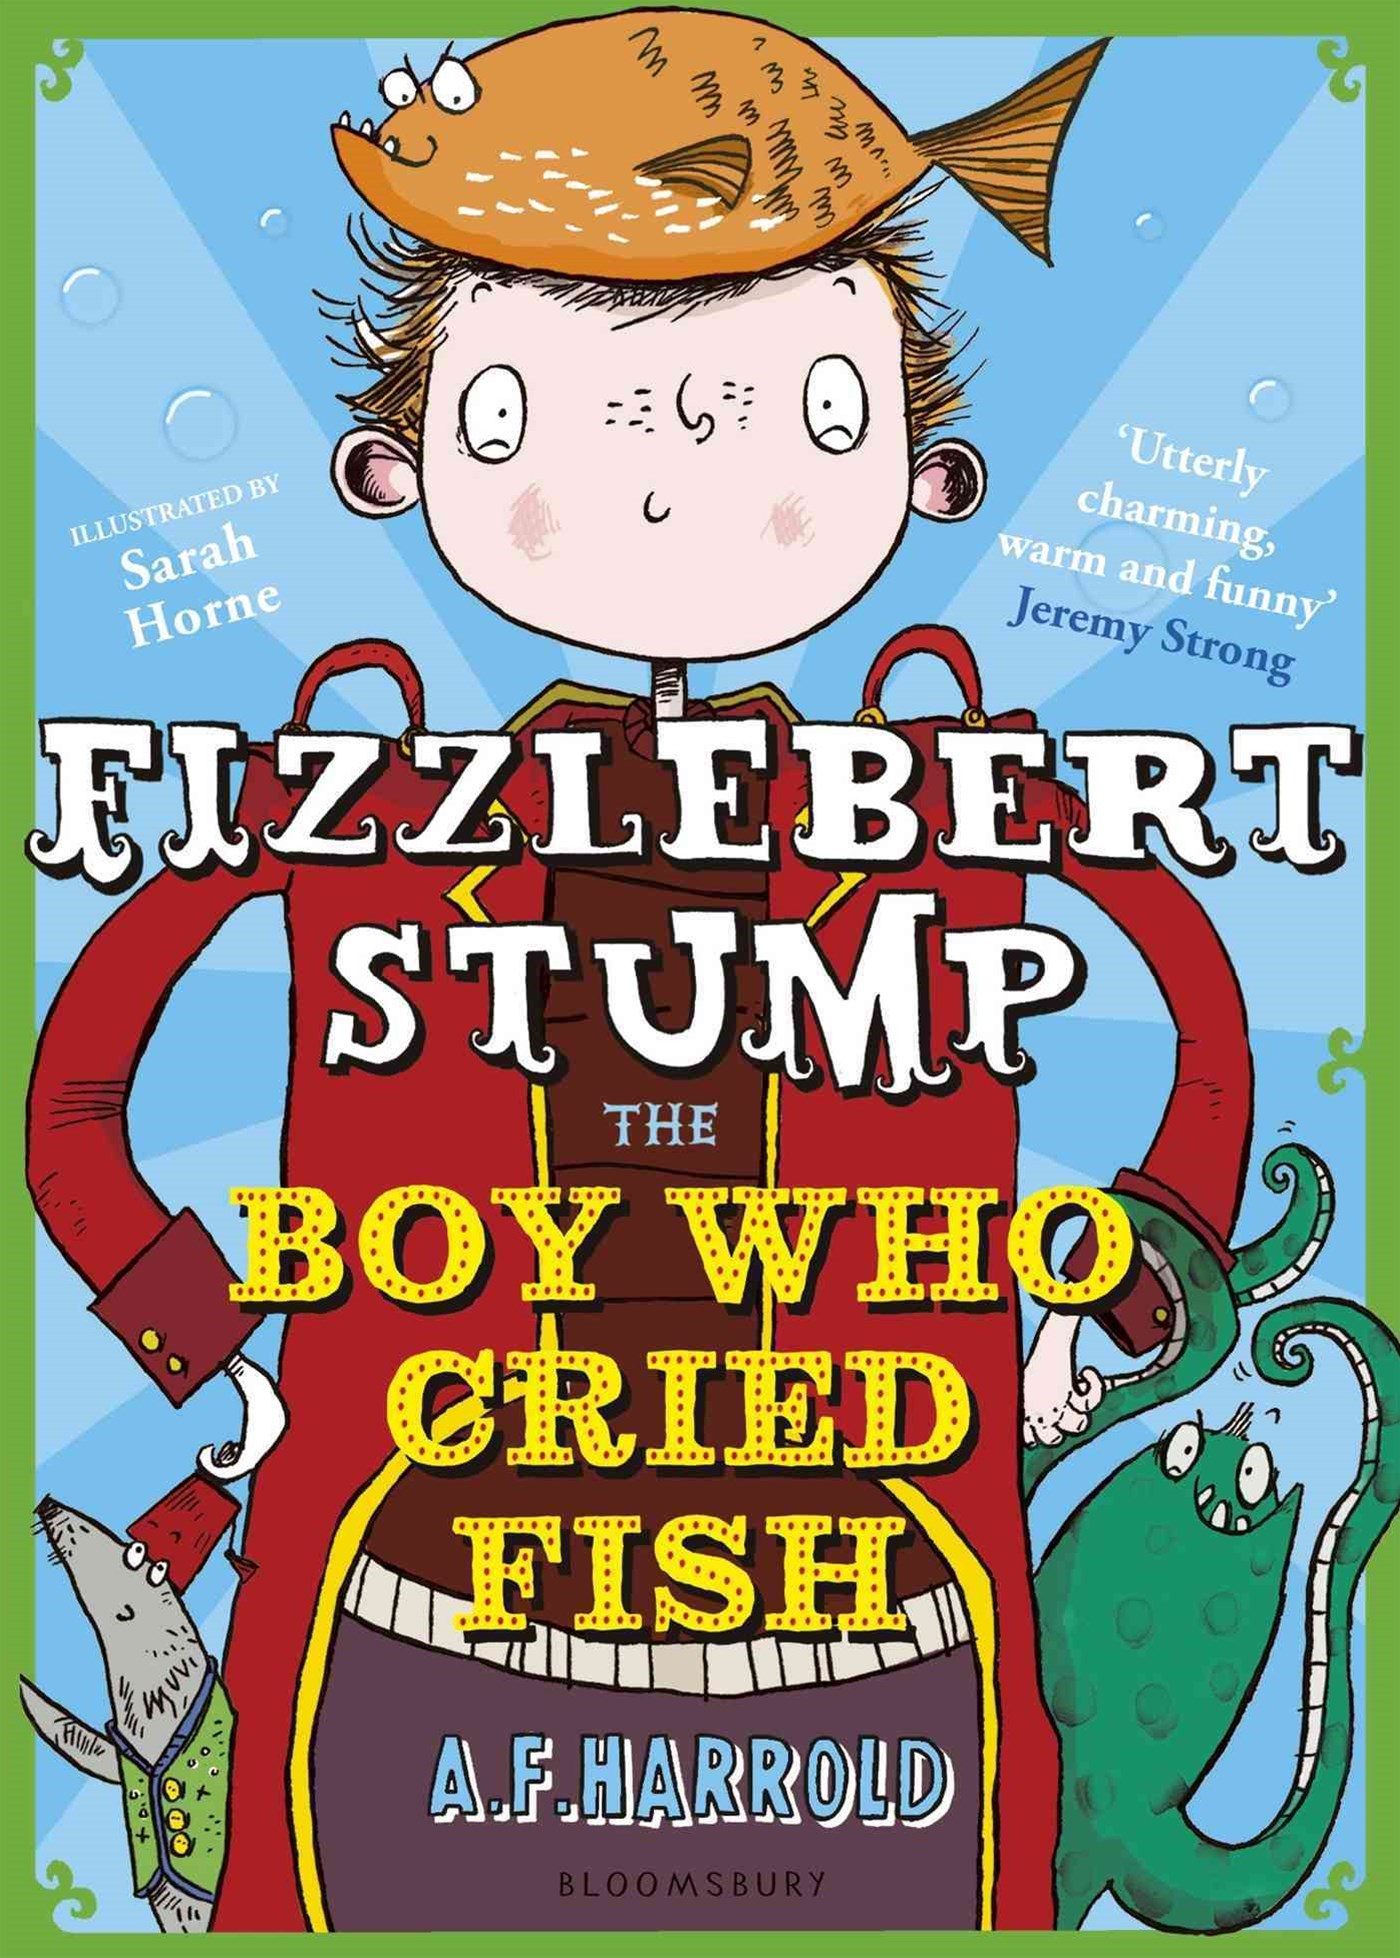 Fizzlebert Stump